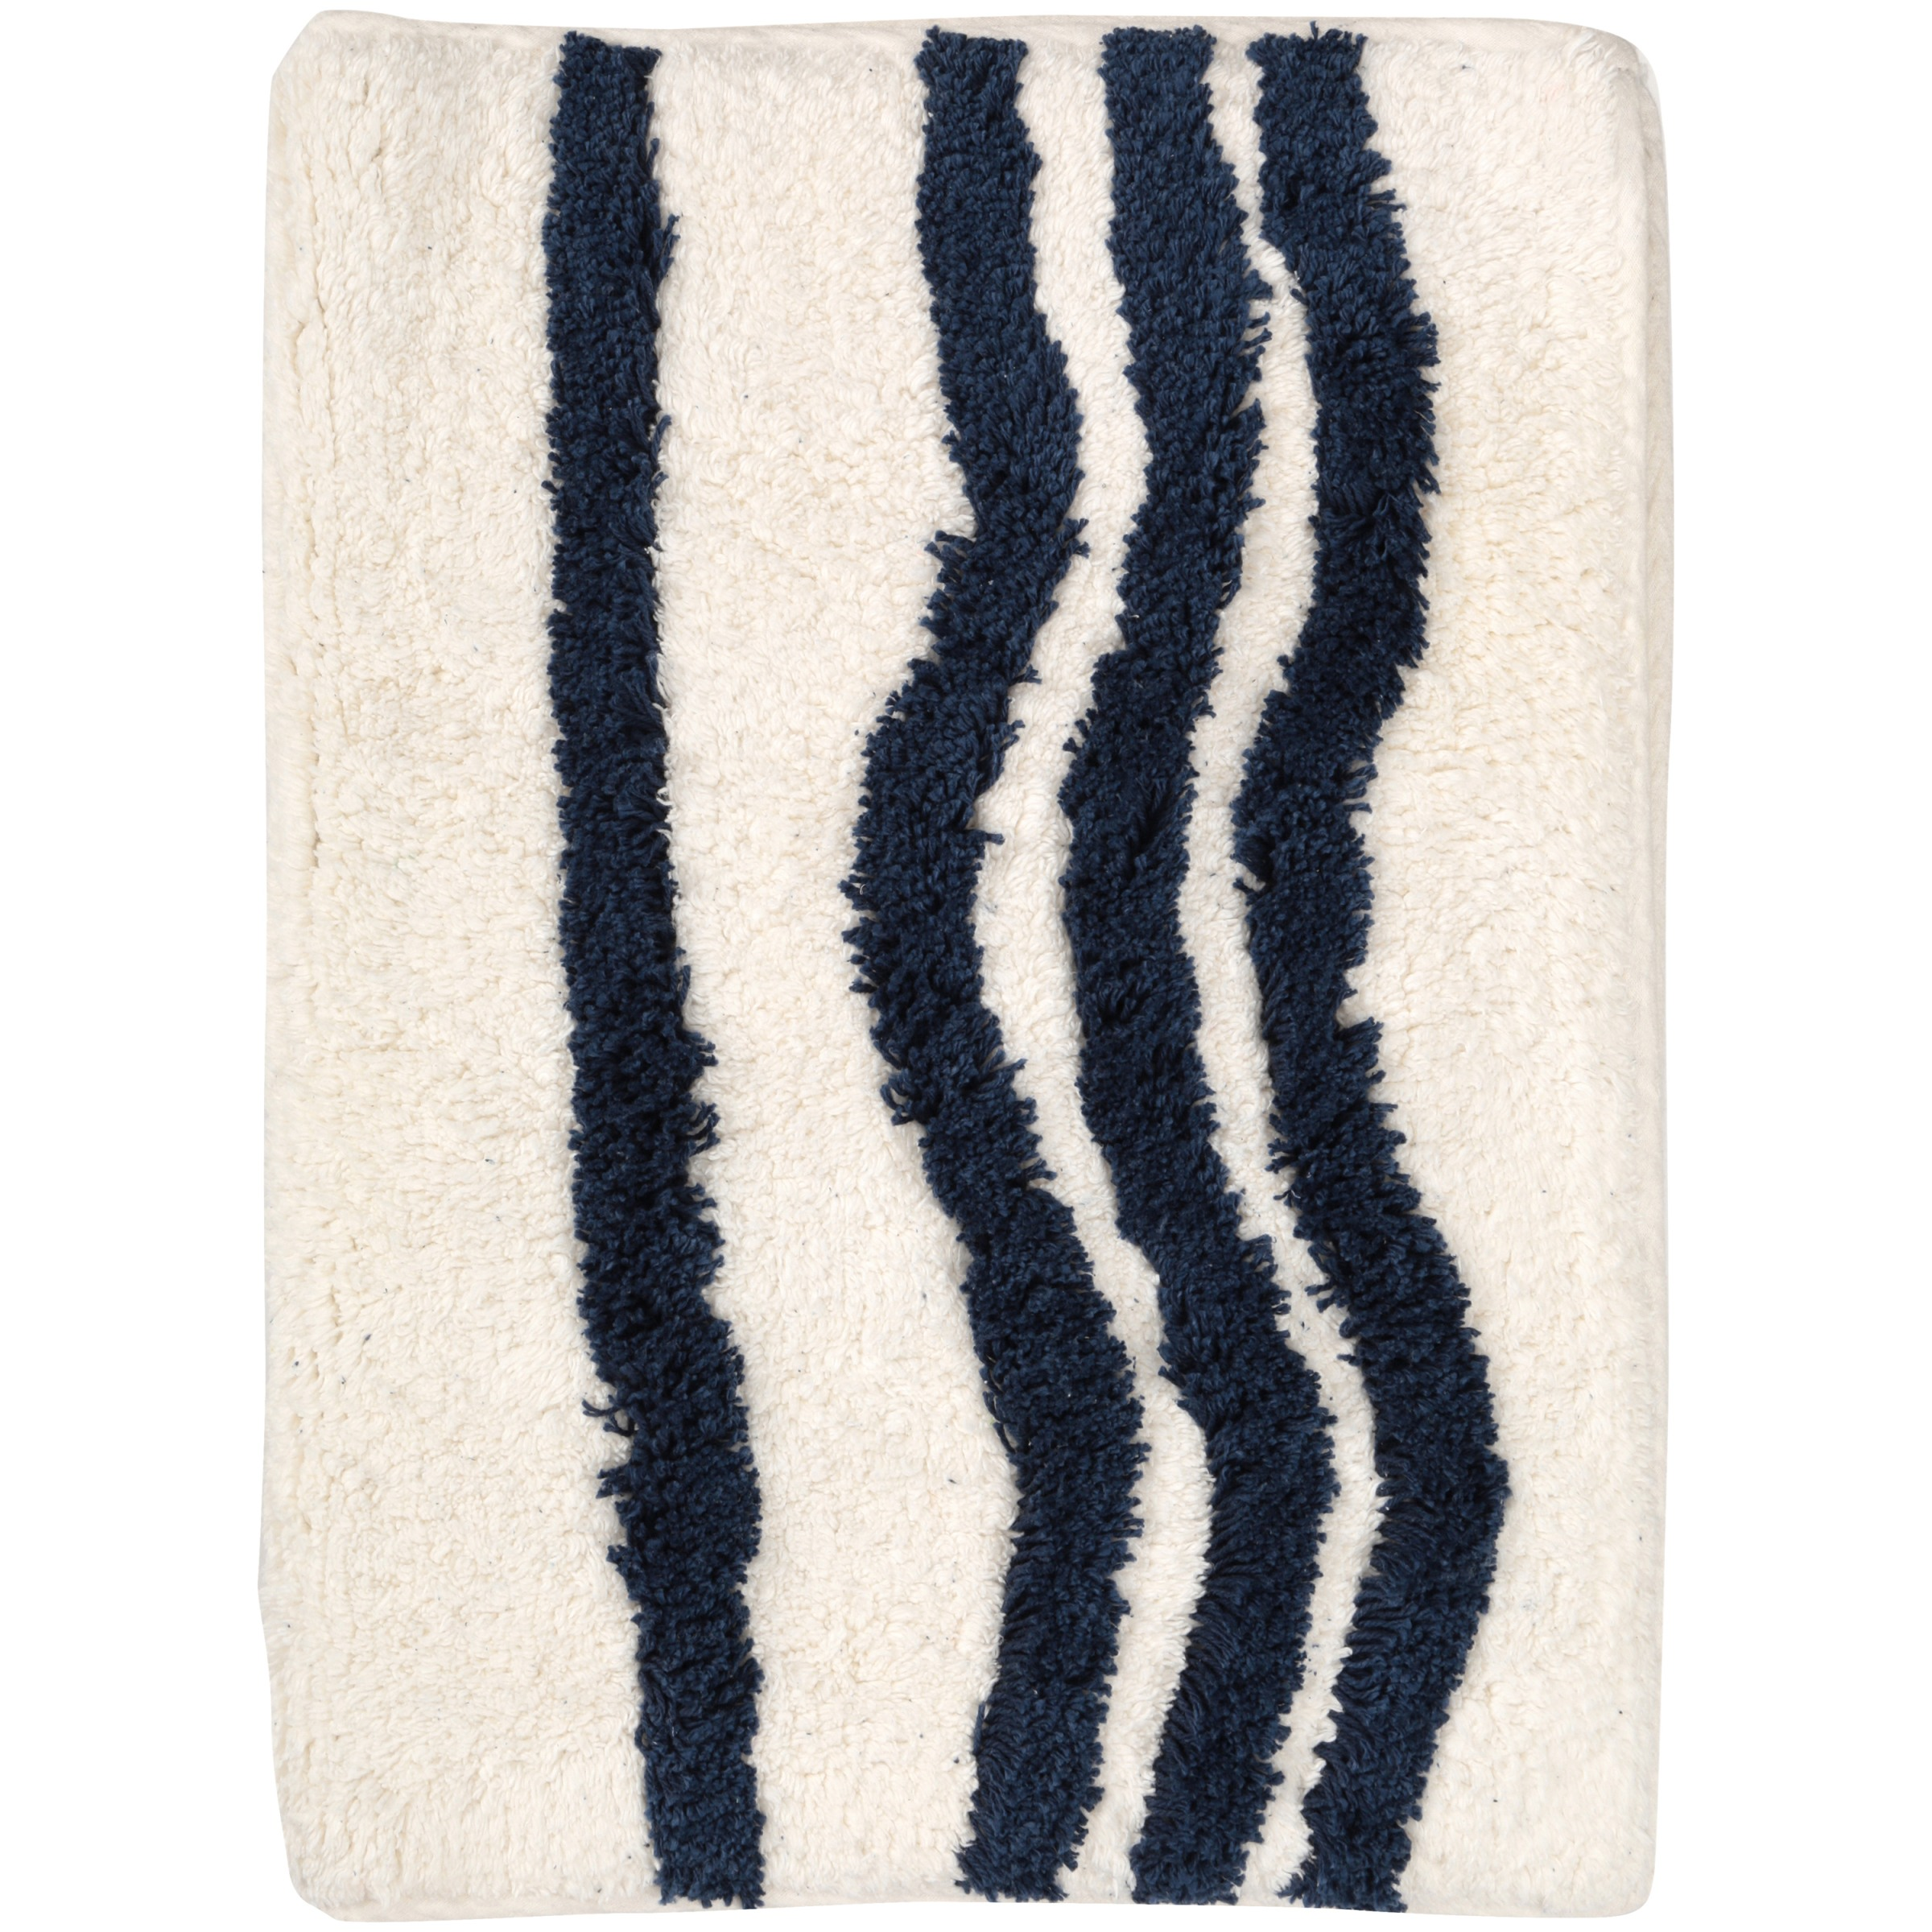 Mainstays Cotton Striped Bath Rug by Idea Nuova